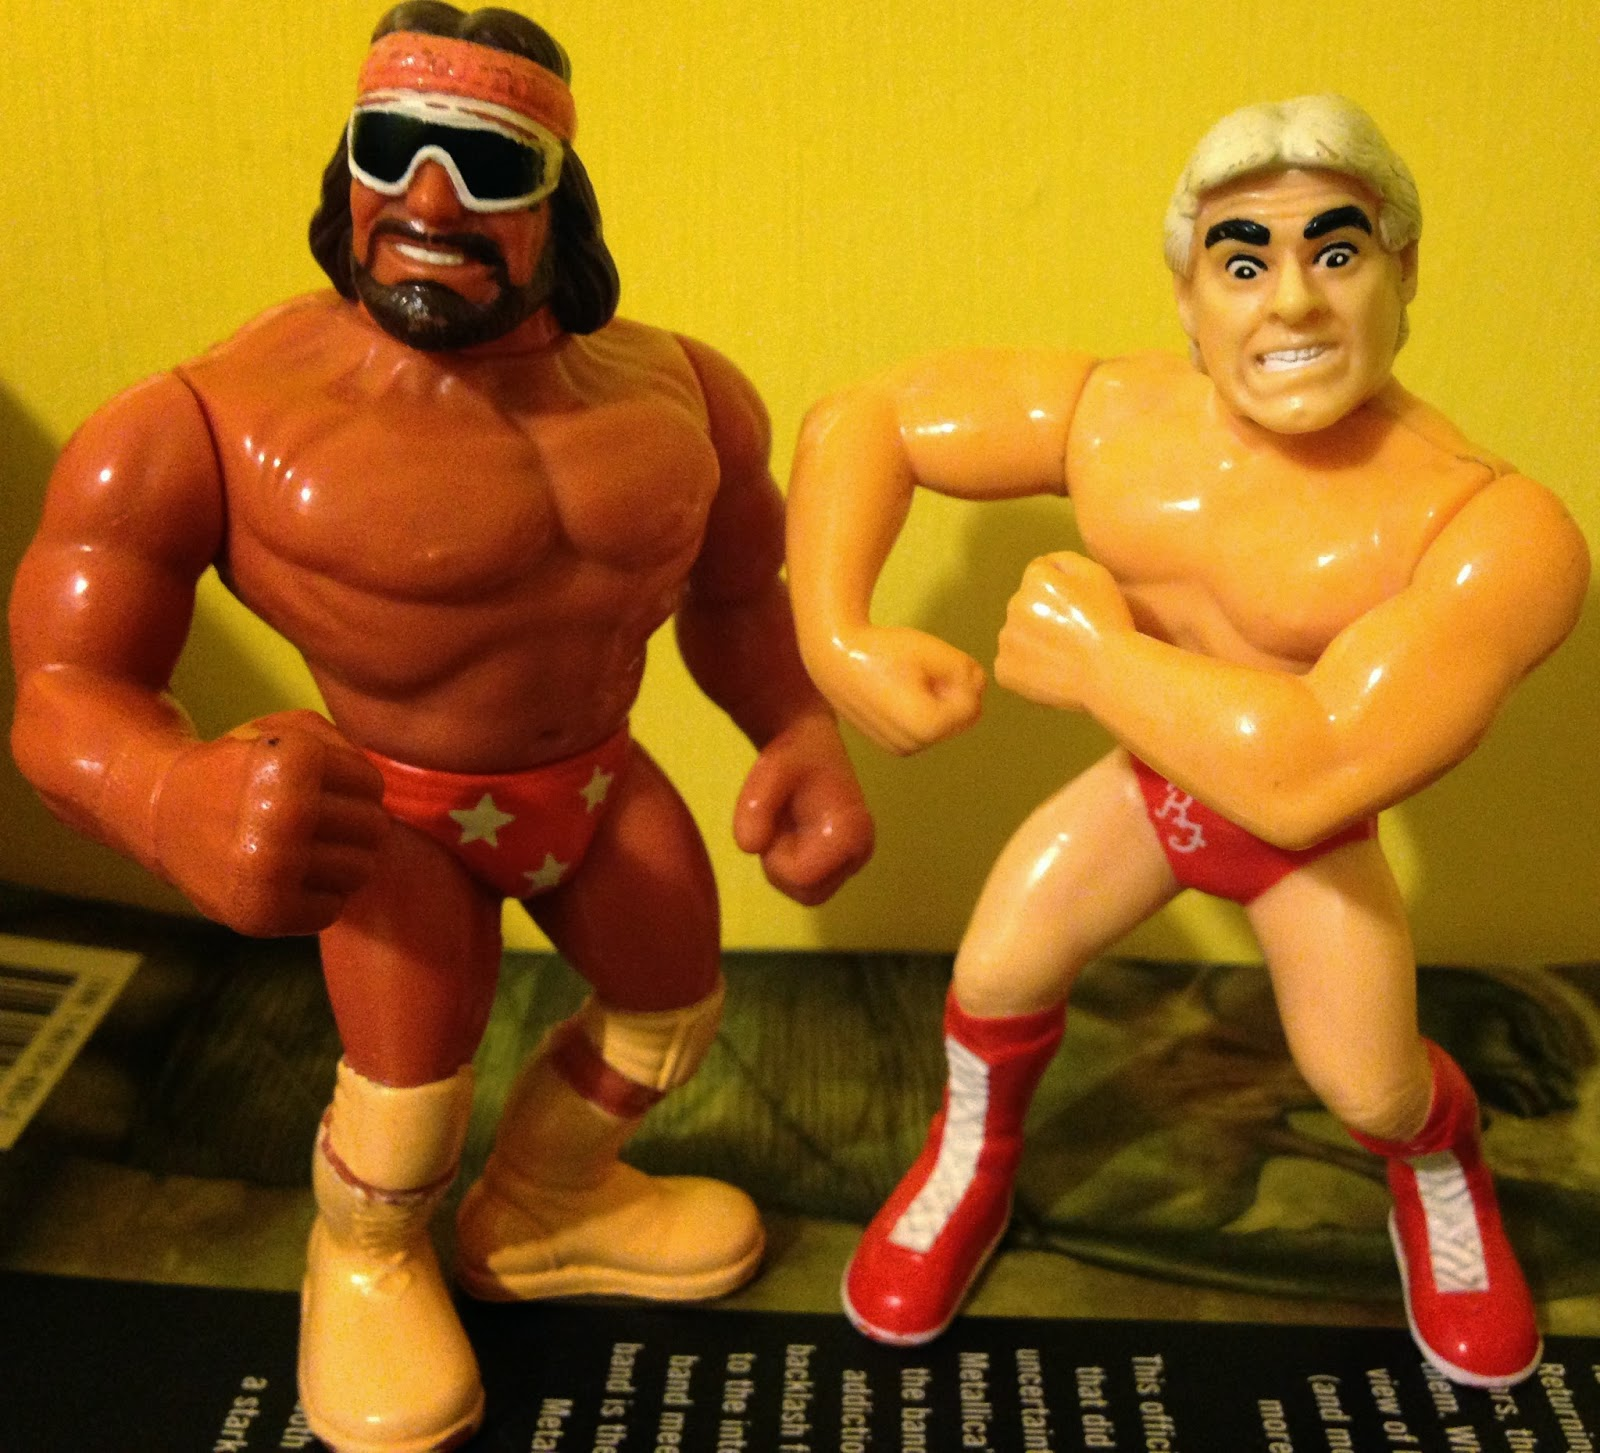 WWF / WWE - Hasbro Wrestling Figures - Macho Man Randy Savage vs.Ric Flair - Wrestlemania 8